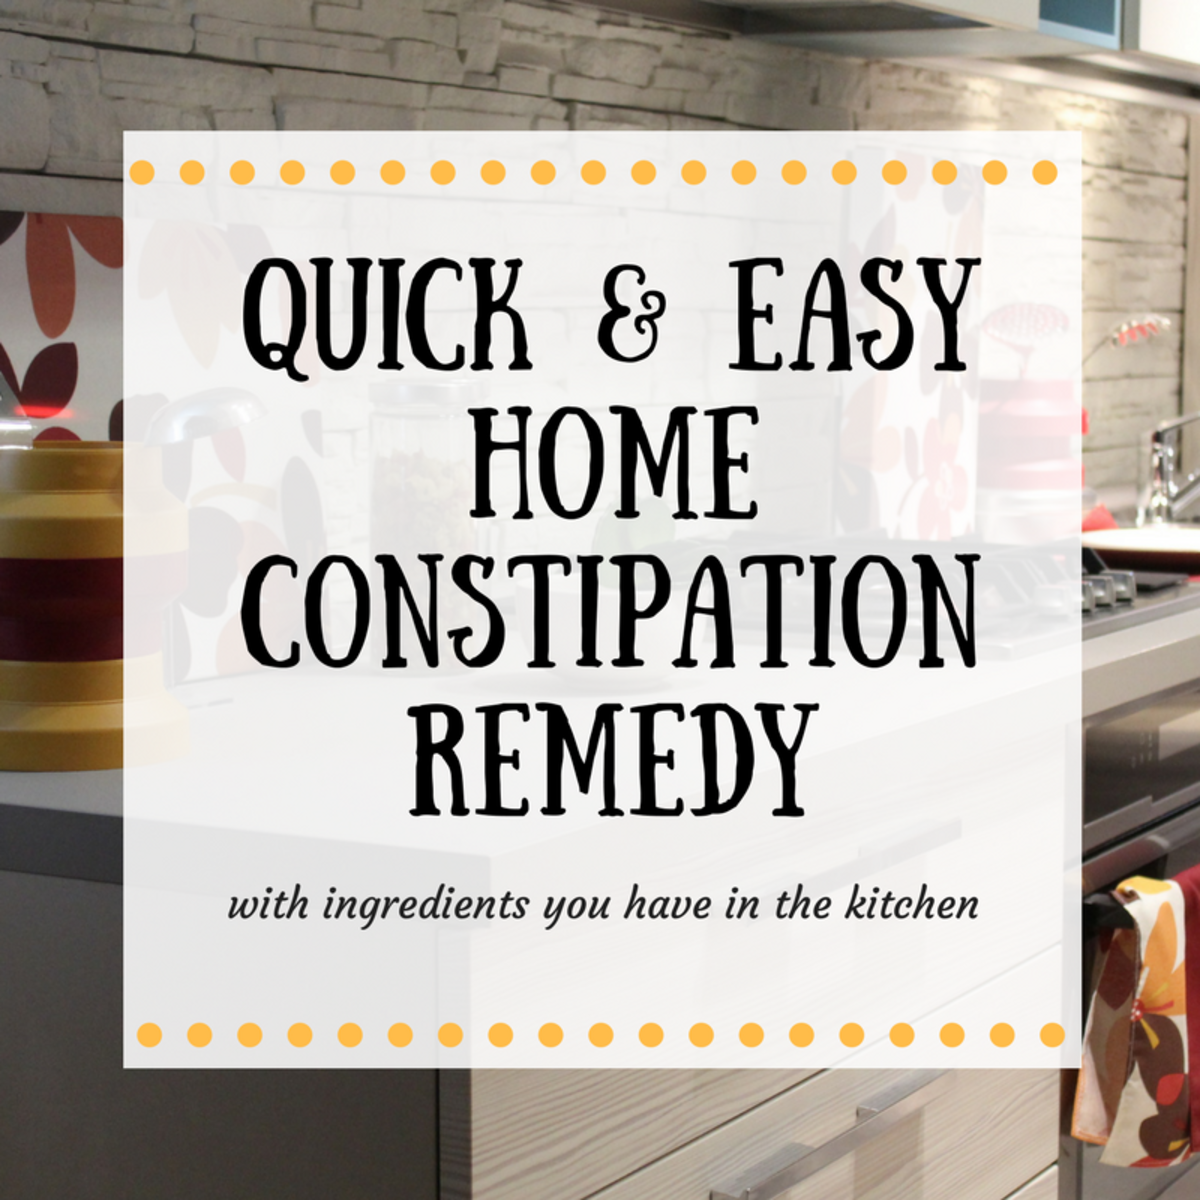 It's easy to resolve constipation using the quick and easy home remedy I have provided.